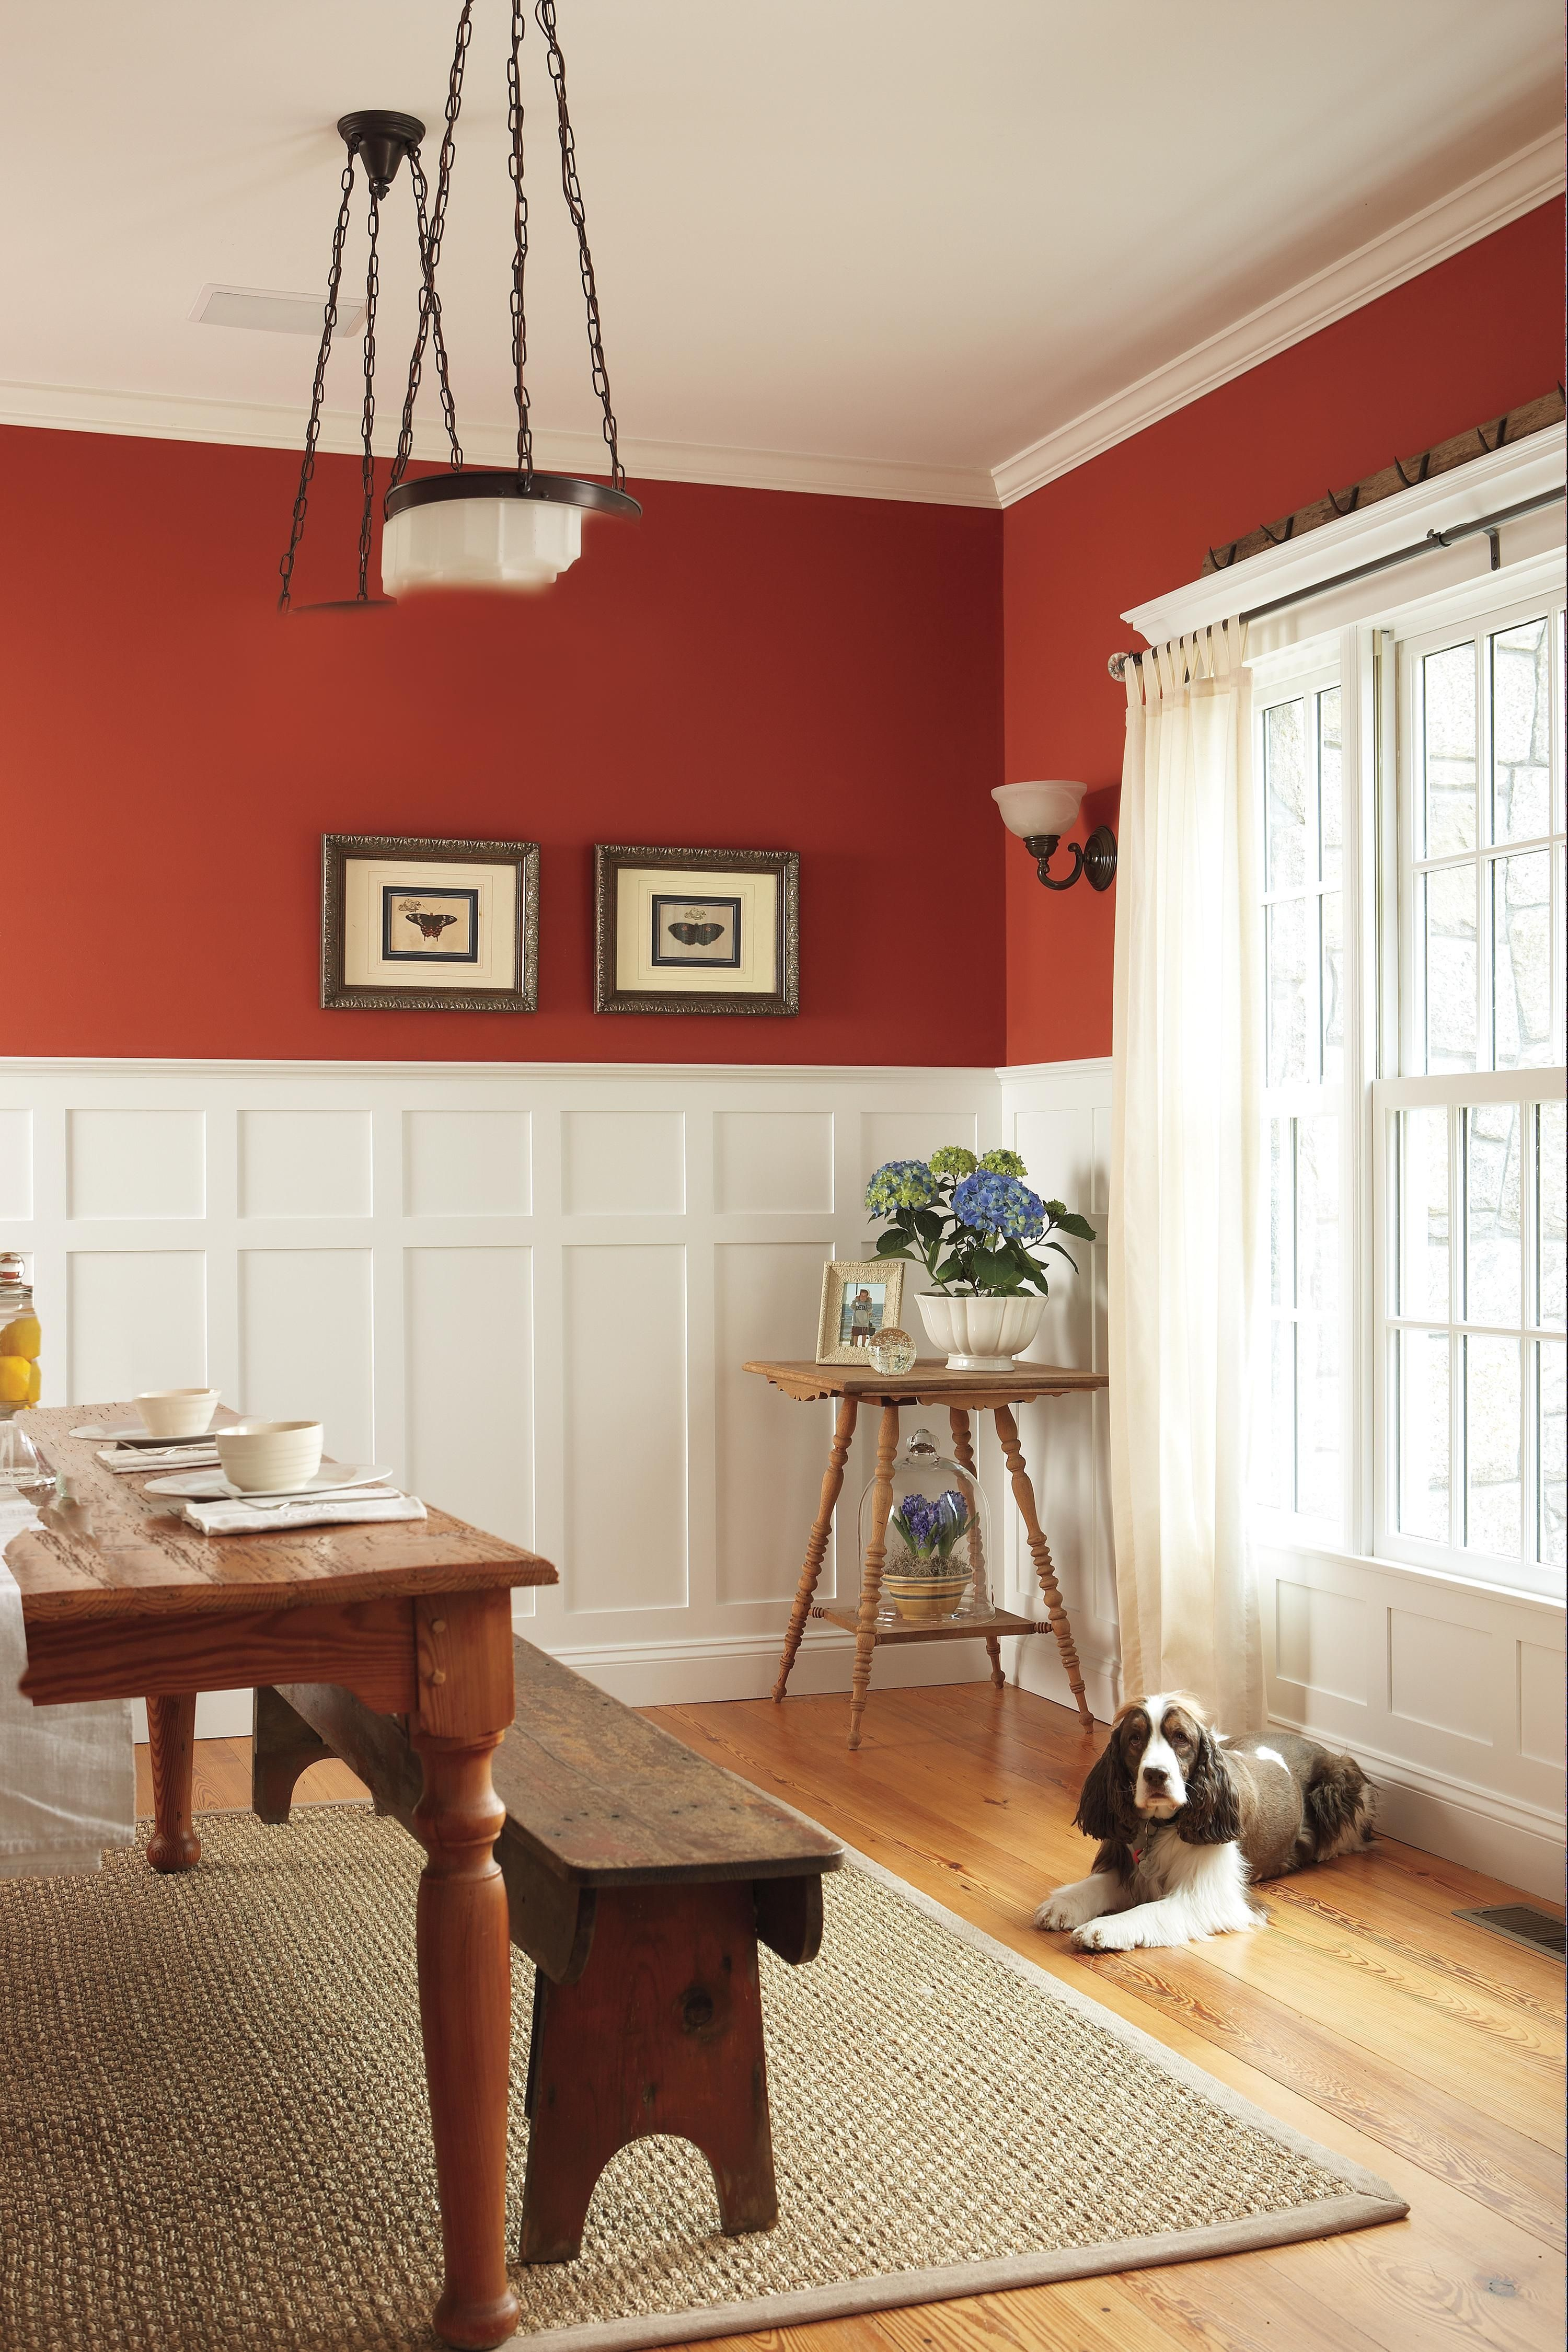 14 Unutterable French Wainscoting Ideas Dining Room Wainscoting Wainscoting Styles Red Dining Room